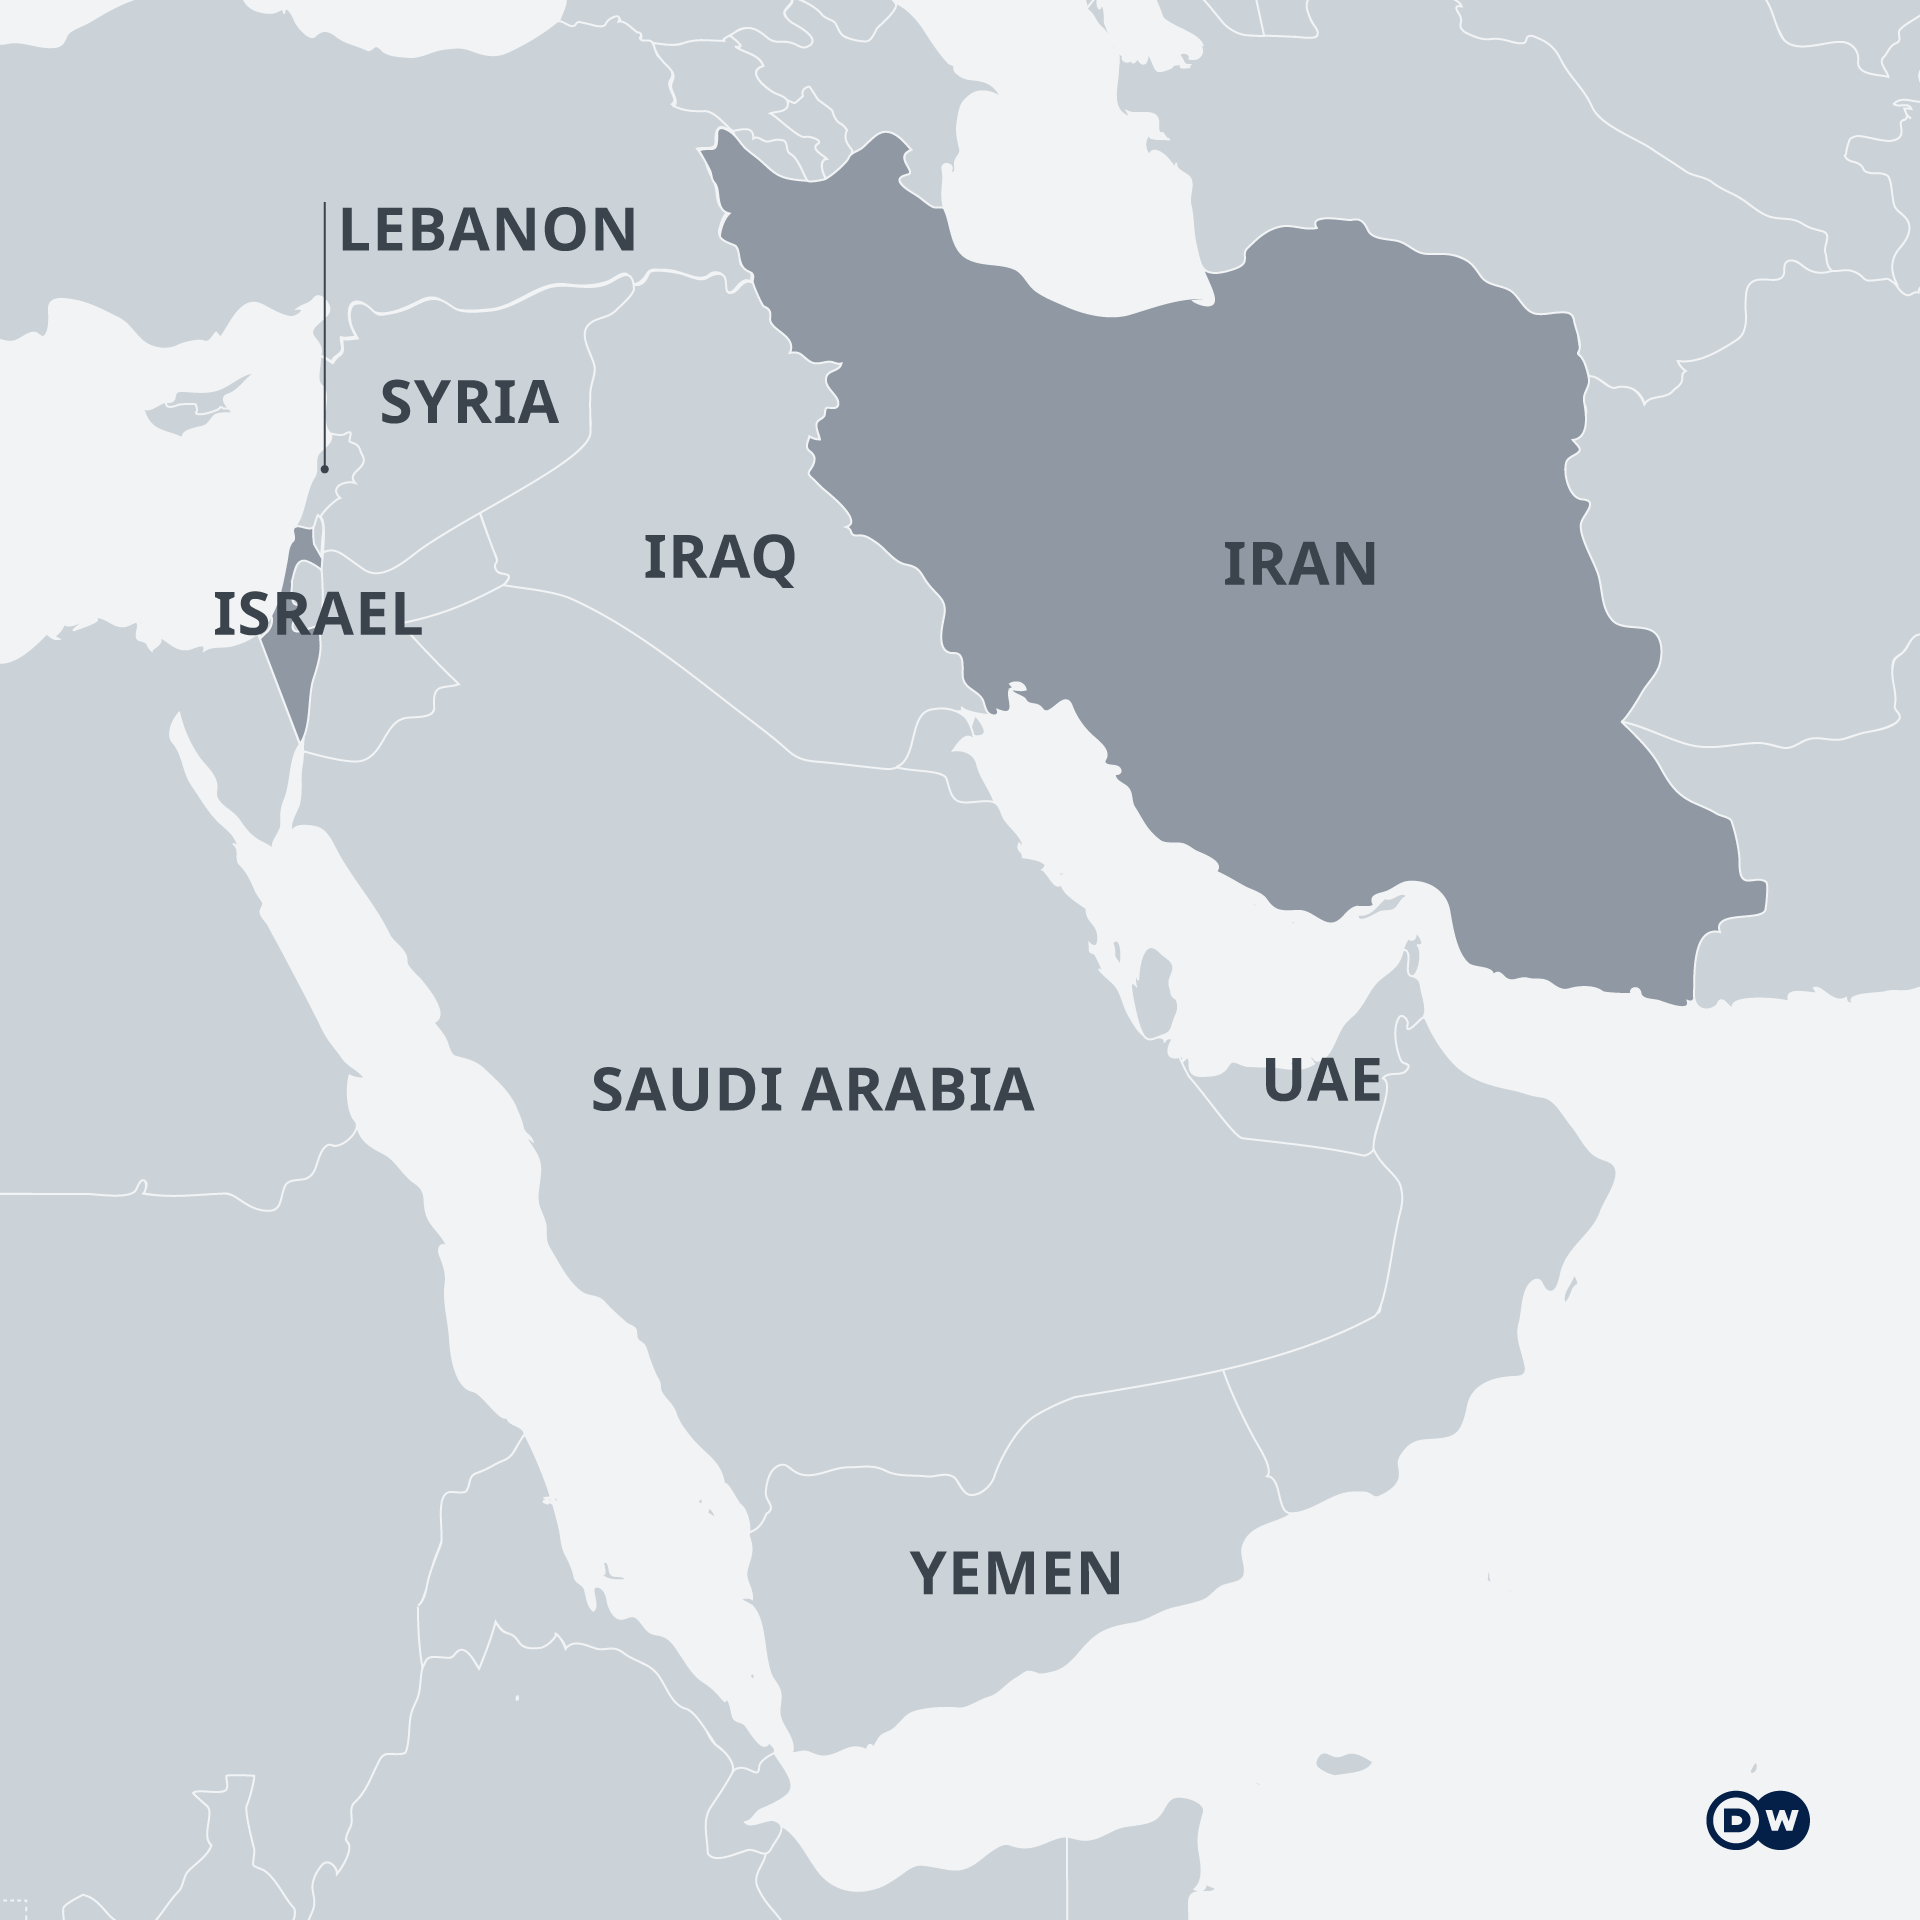 Israel Iran Conflict To Be Major Middle East Issue In 2020 Middle East News And Analysis Of Events In The Arab World Dw 02 01 2020